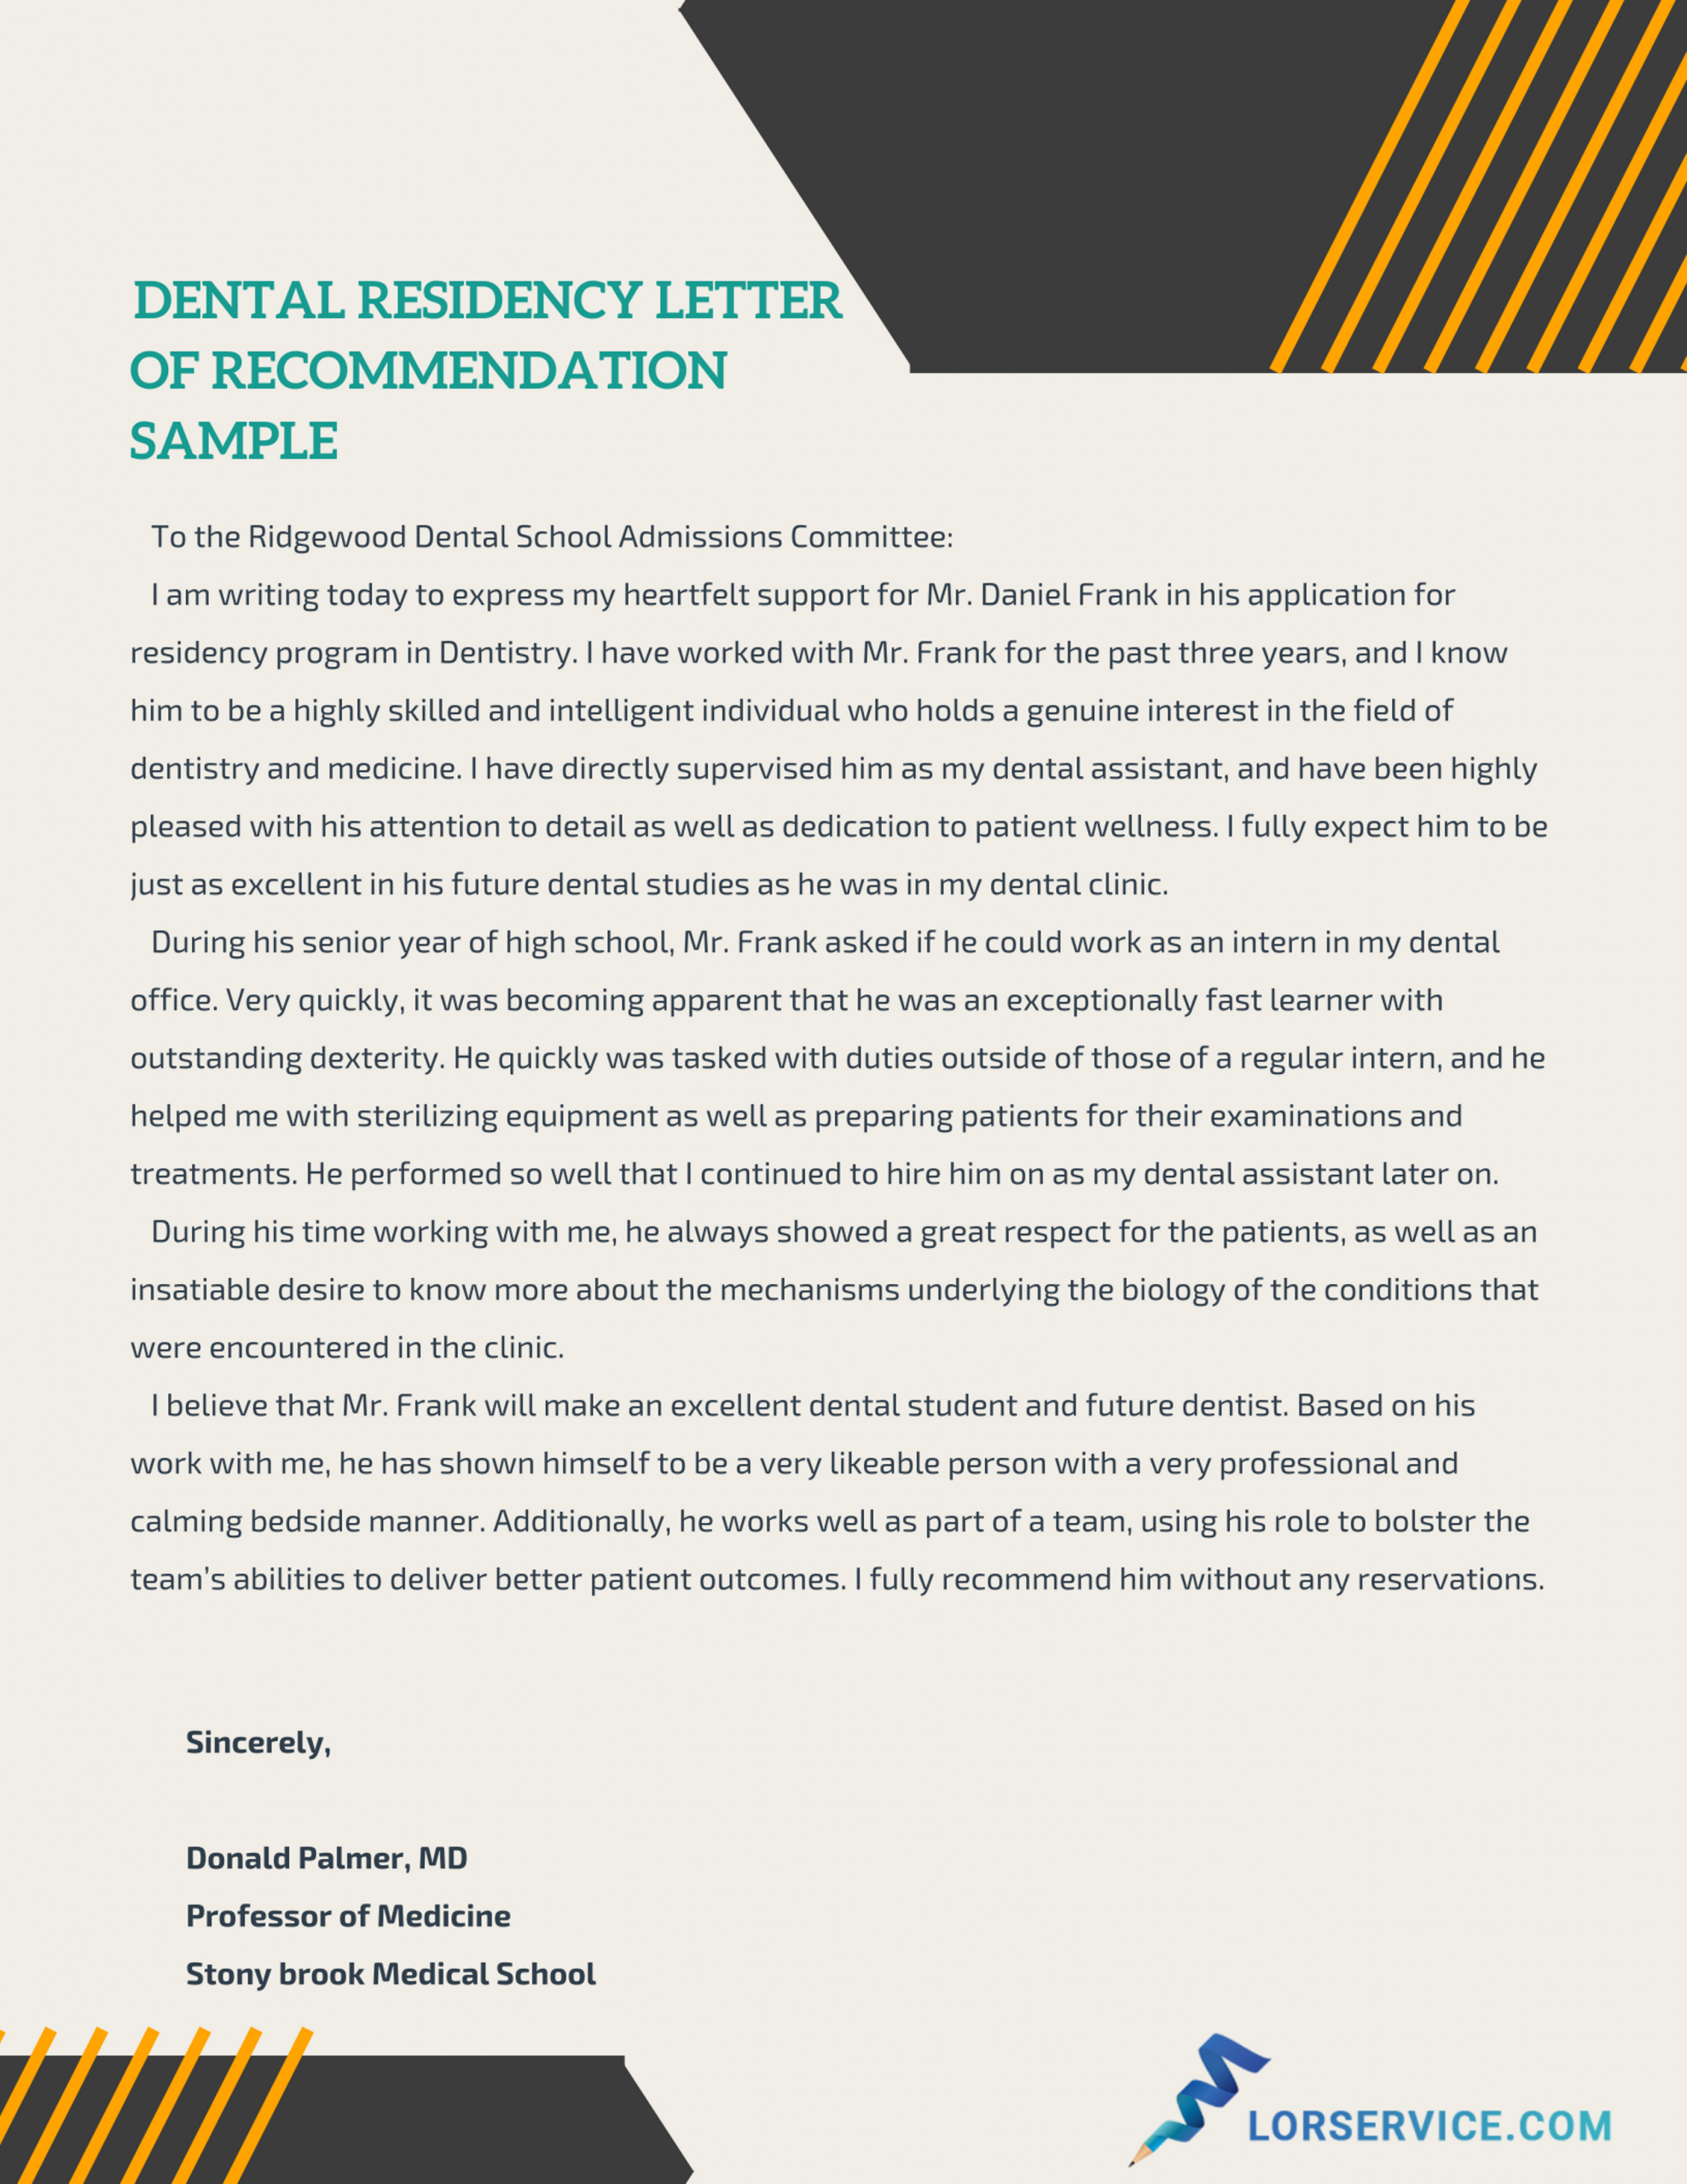 Effective Dental Residency Letter Of Recommendation Sample with regard to dimensions 2550 X 3300